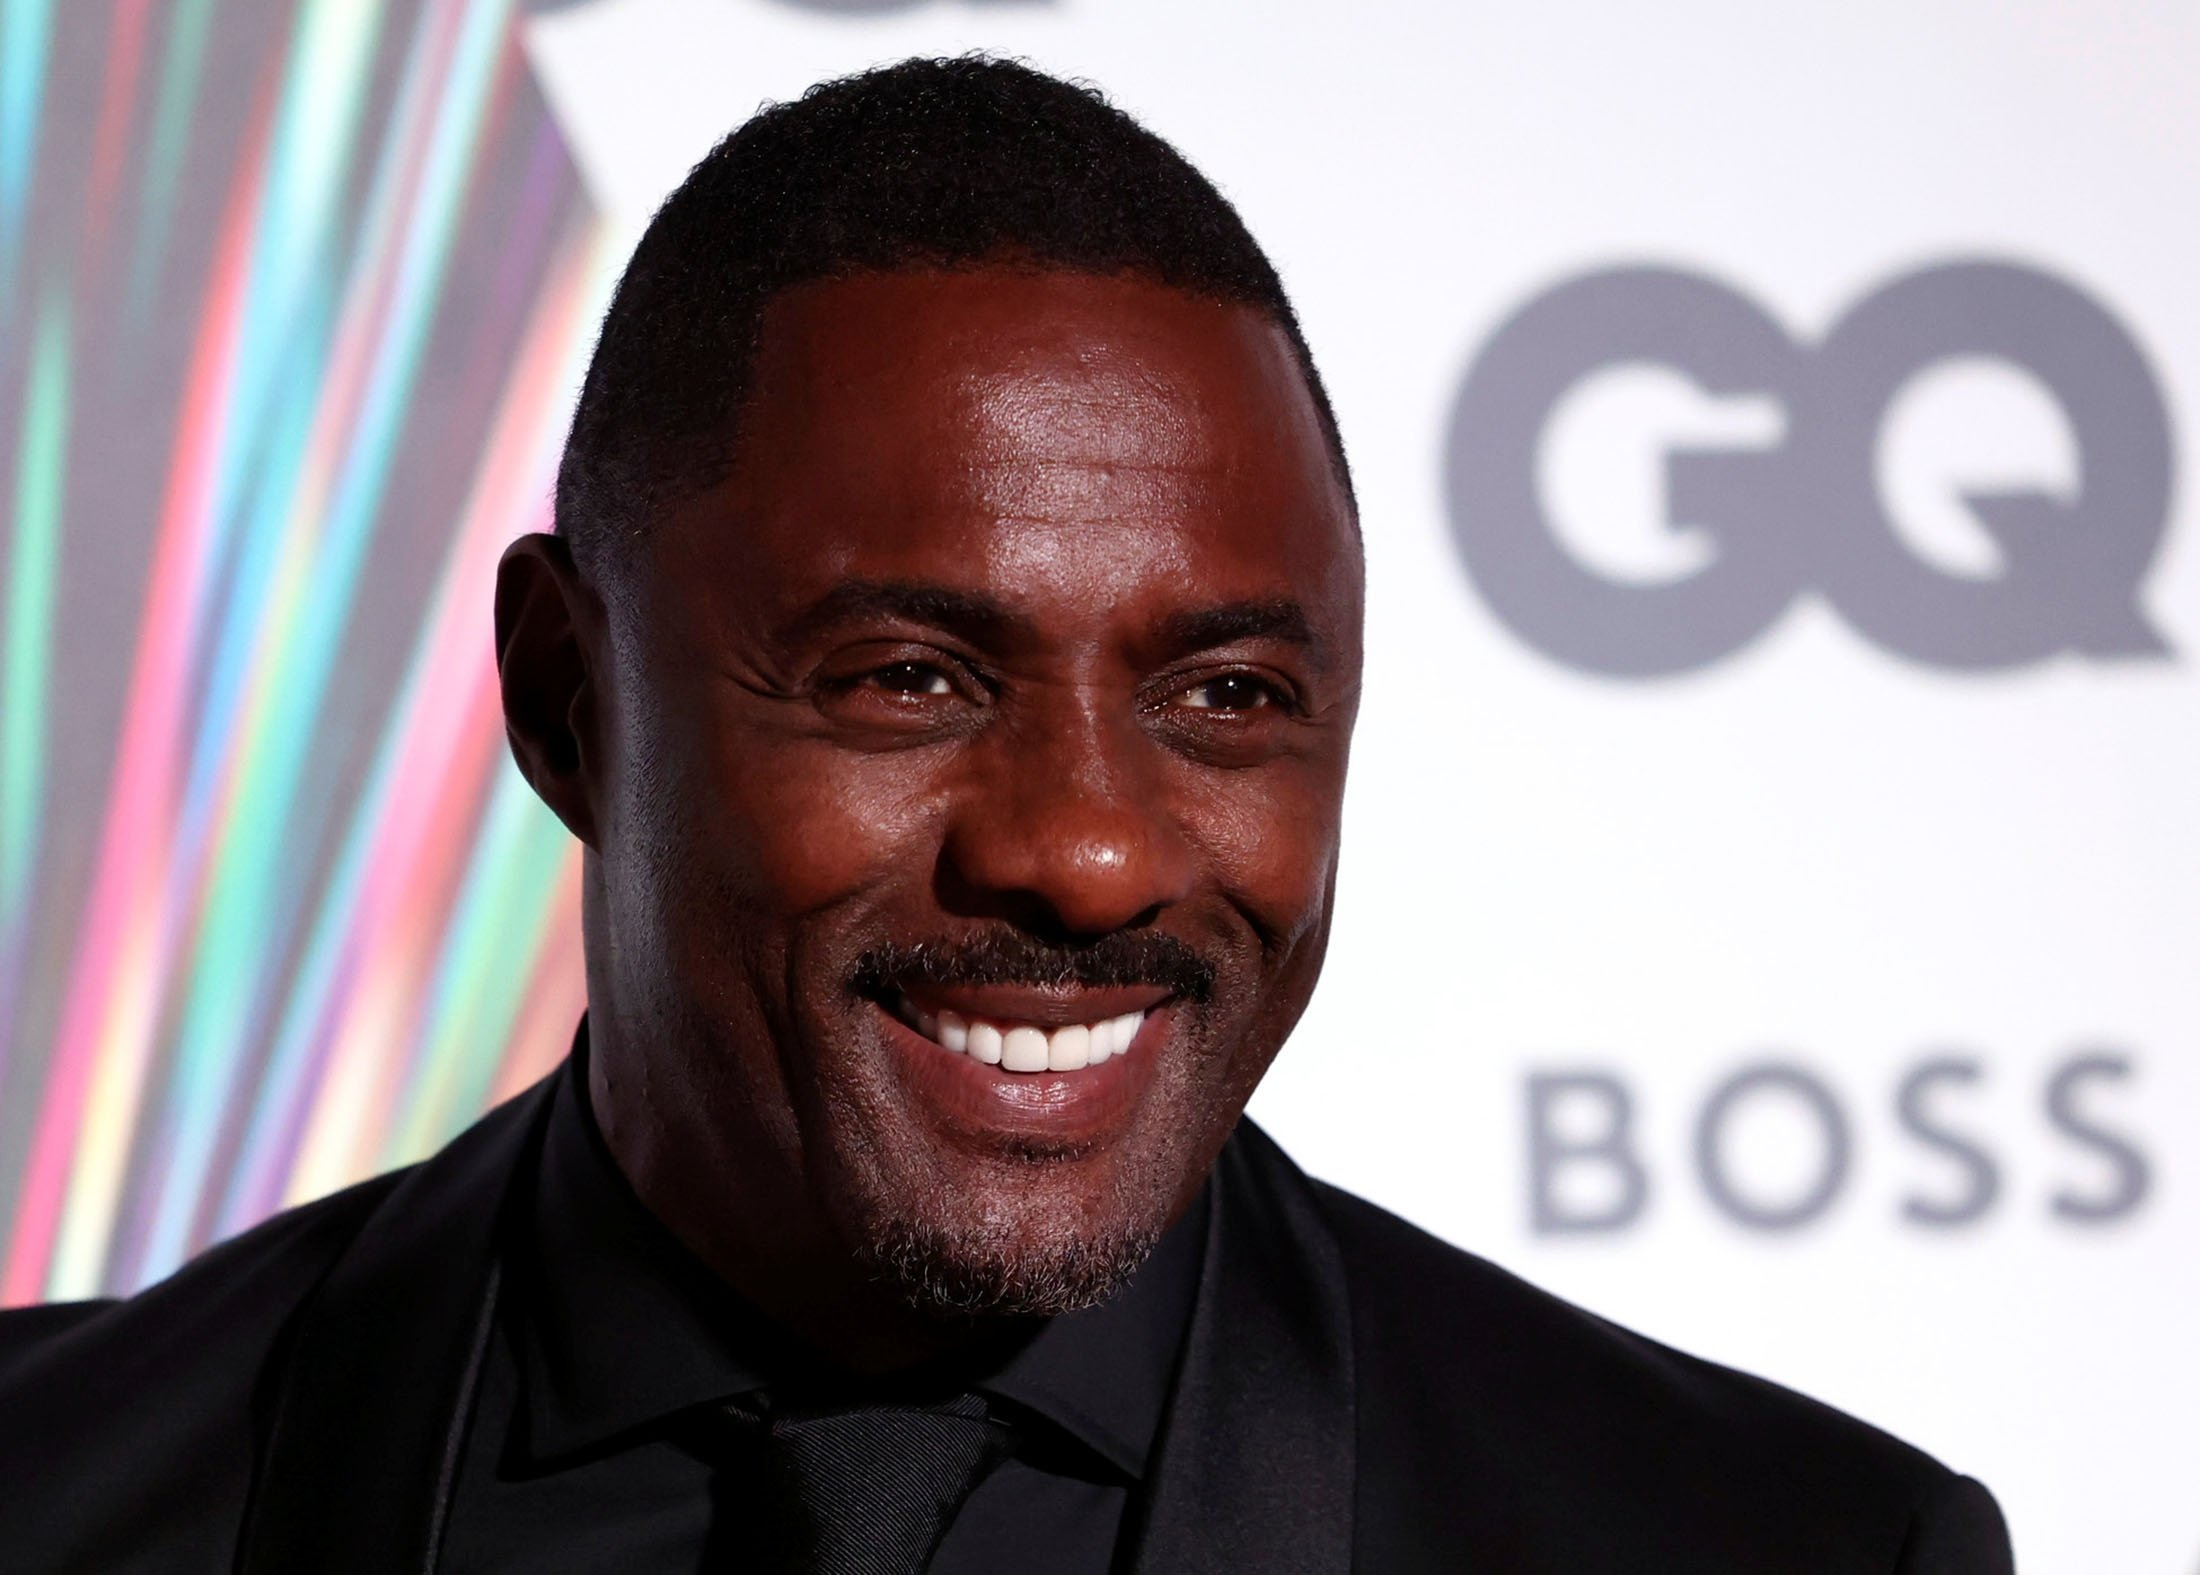 Actor Idris Elba arrives to the GQ Men Of The Year Awards 2021 in London, U.K., Sept. 1, 2021. (Reuters Photo)